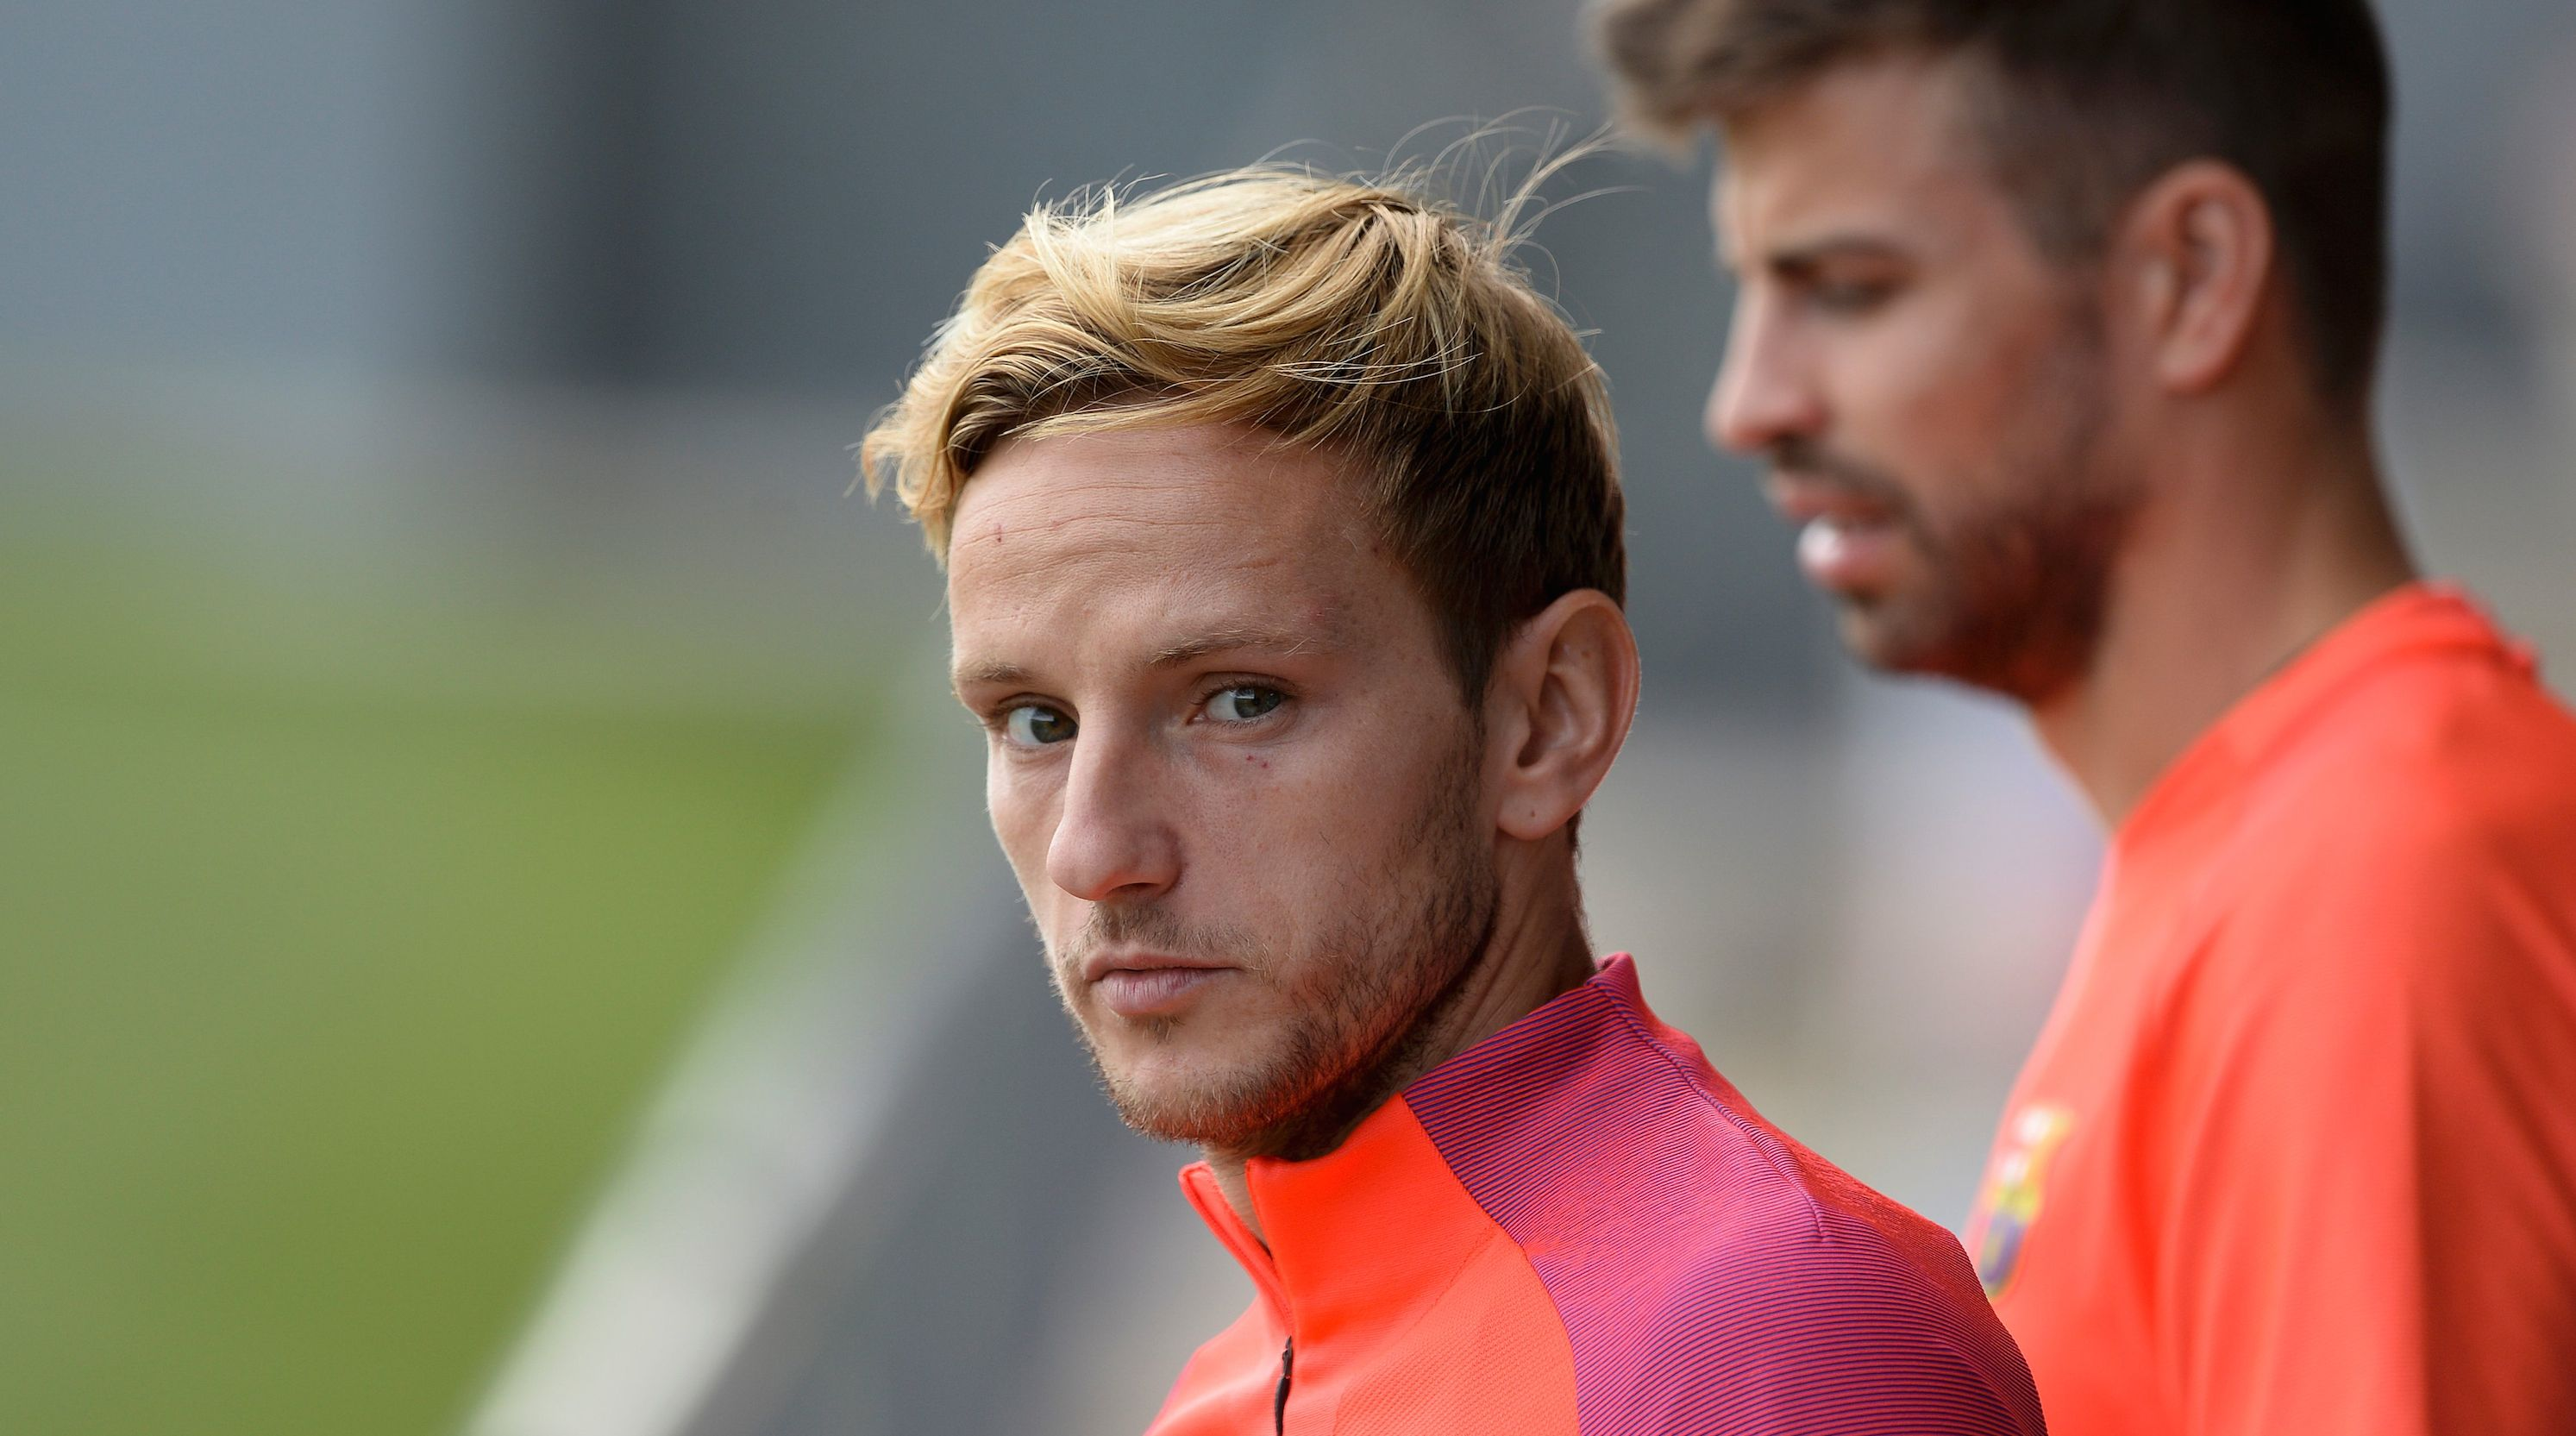 Barcelona's Croatian midfielder Ivan Rakitic (L) arrives before a training session at the Sports Center FC Barcelona Joan Gamper in Sant Joan Despi, near Barcelona on September 20, 2016. / AFP / JOSEP LAGO (Photo credit should read JOSEP LAGO/AFP/Getty Images)